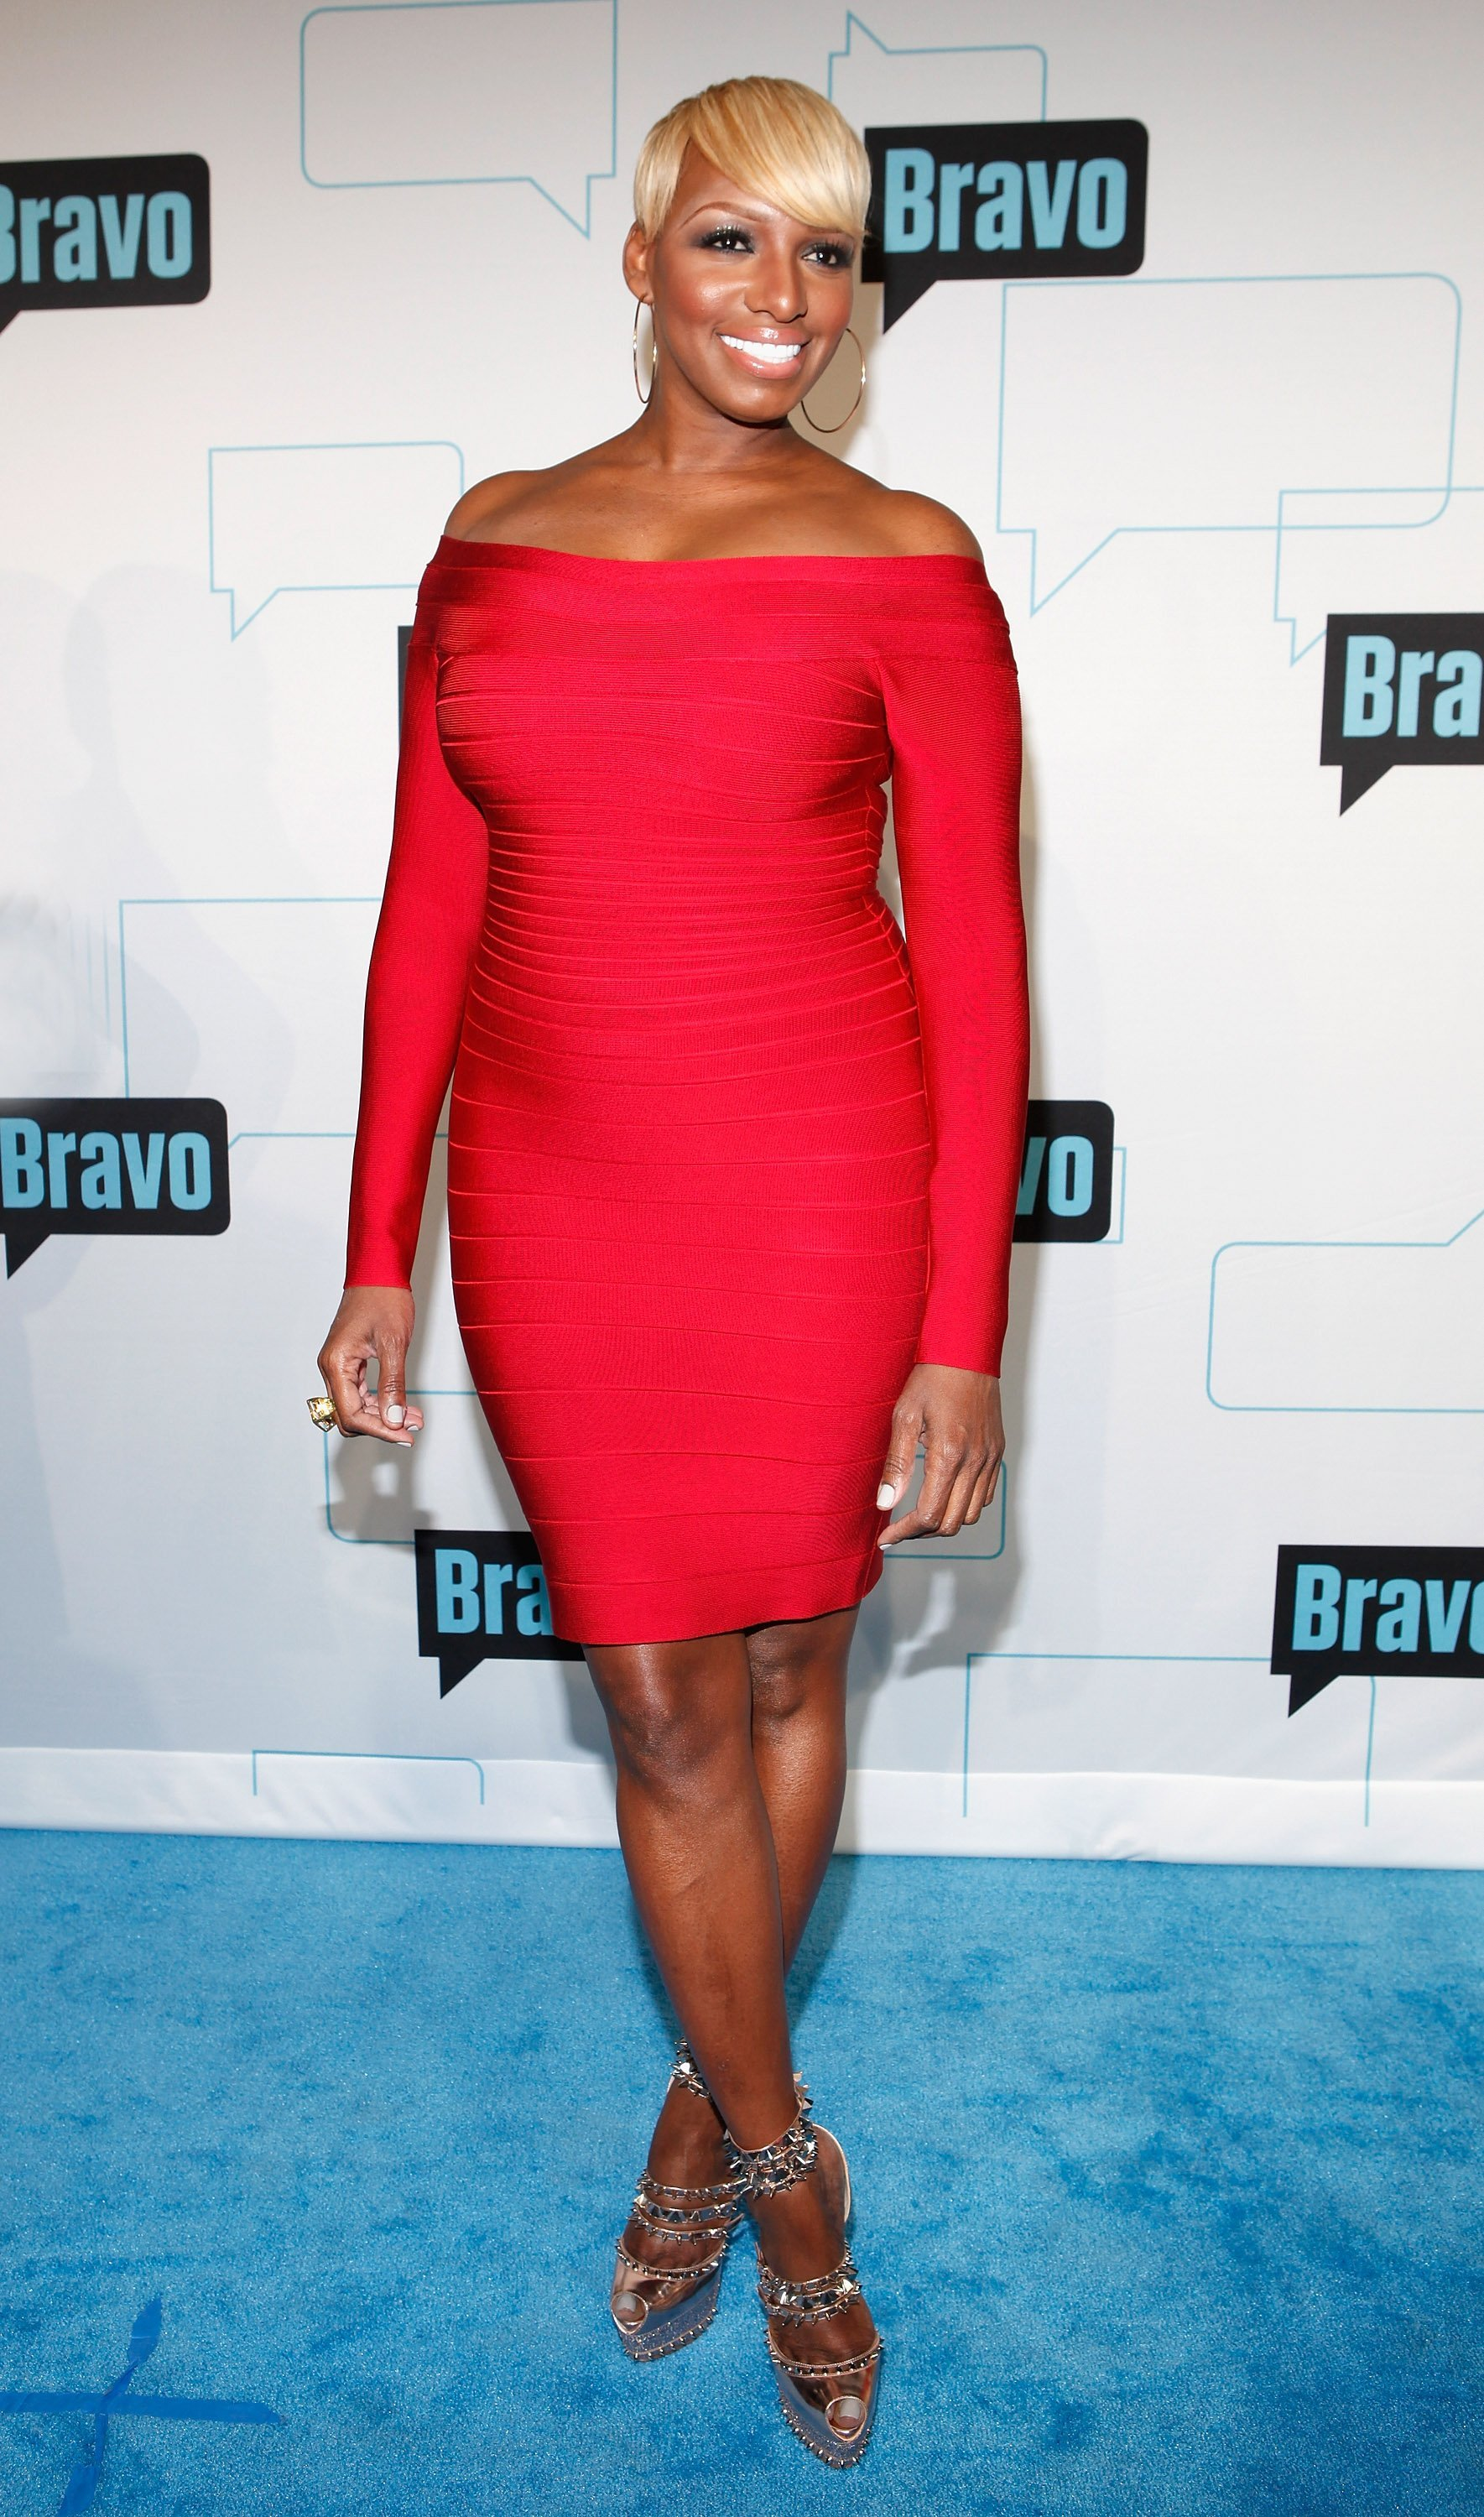 Nene Leakes at a Bravo event | Photo: Getty Images